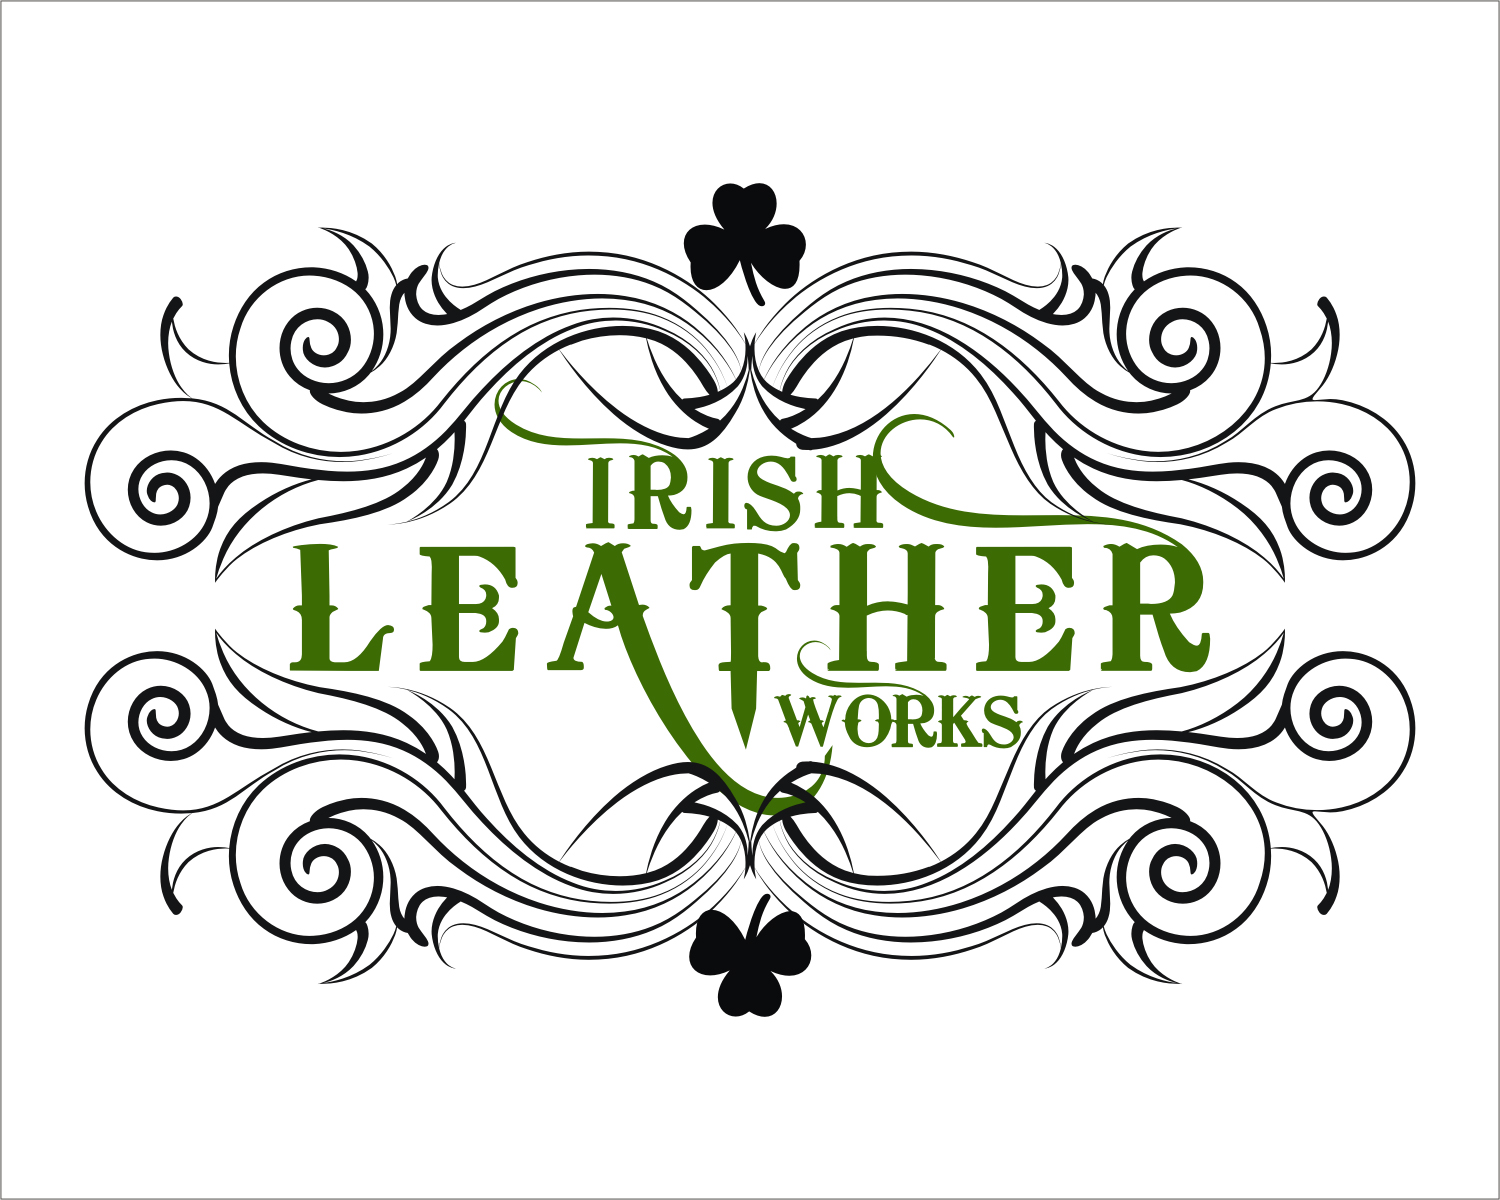 Irish Leather Works